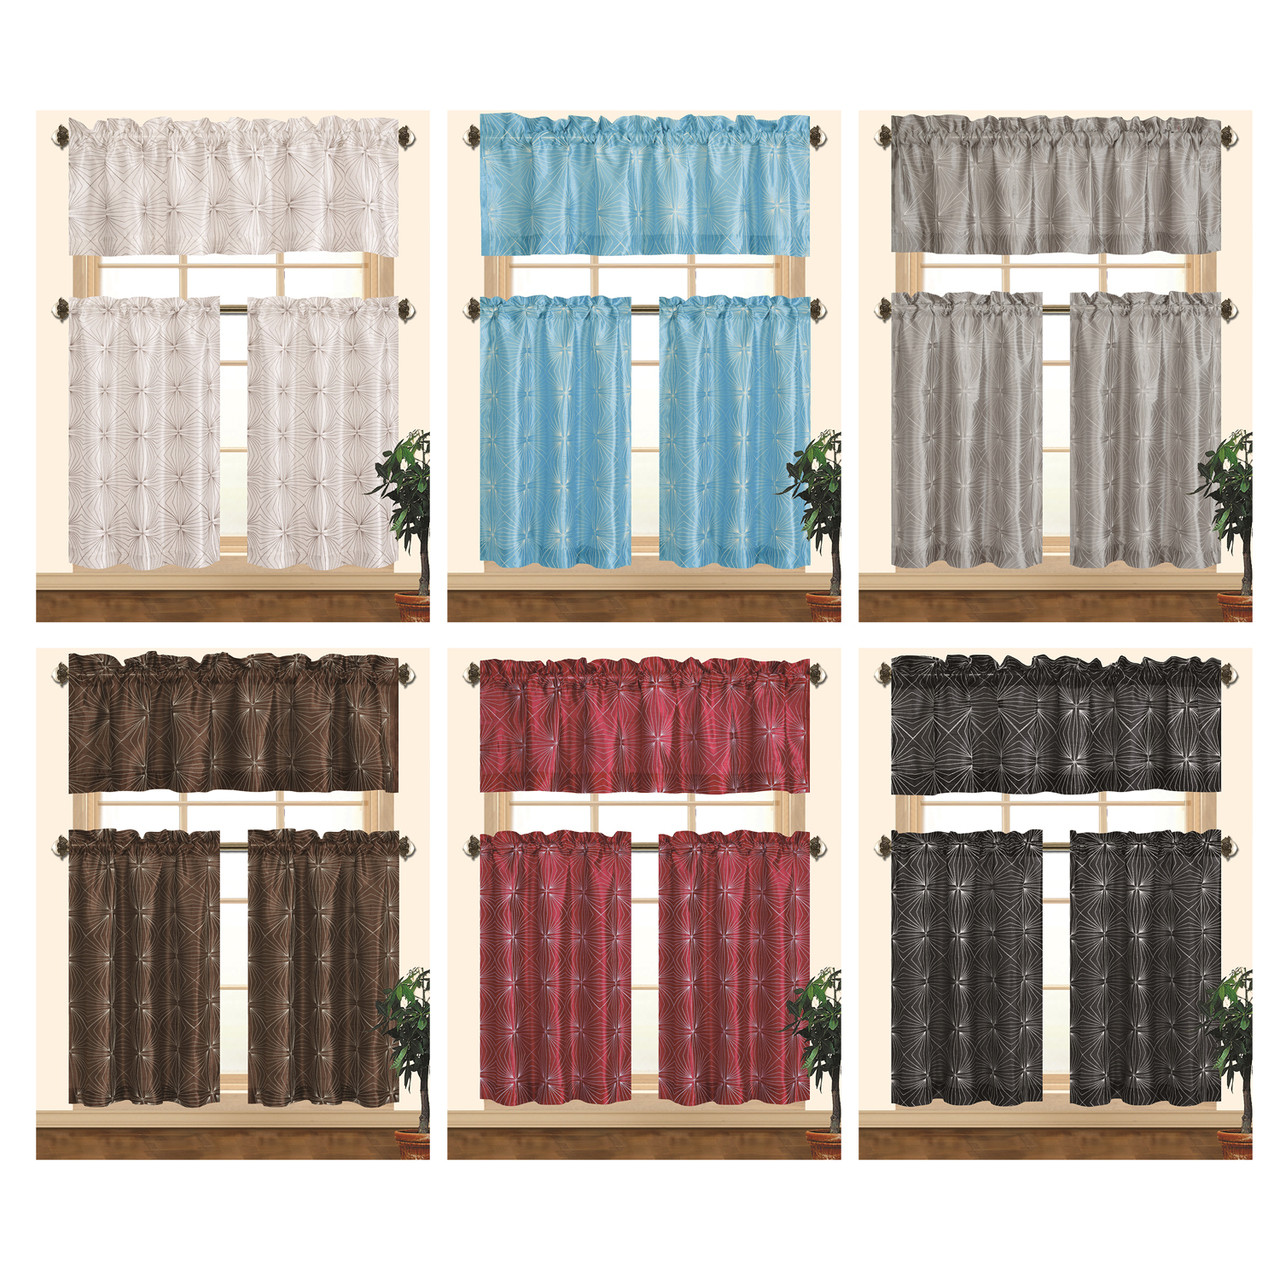 Faux Silk Curtains Kashi Home Dana Kitchen Curtain Set Decorative Faux Silk 3pc Rod Pocket Valance Panels With Geometric Embroidery Design